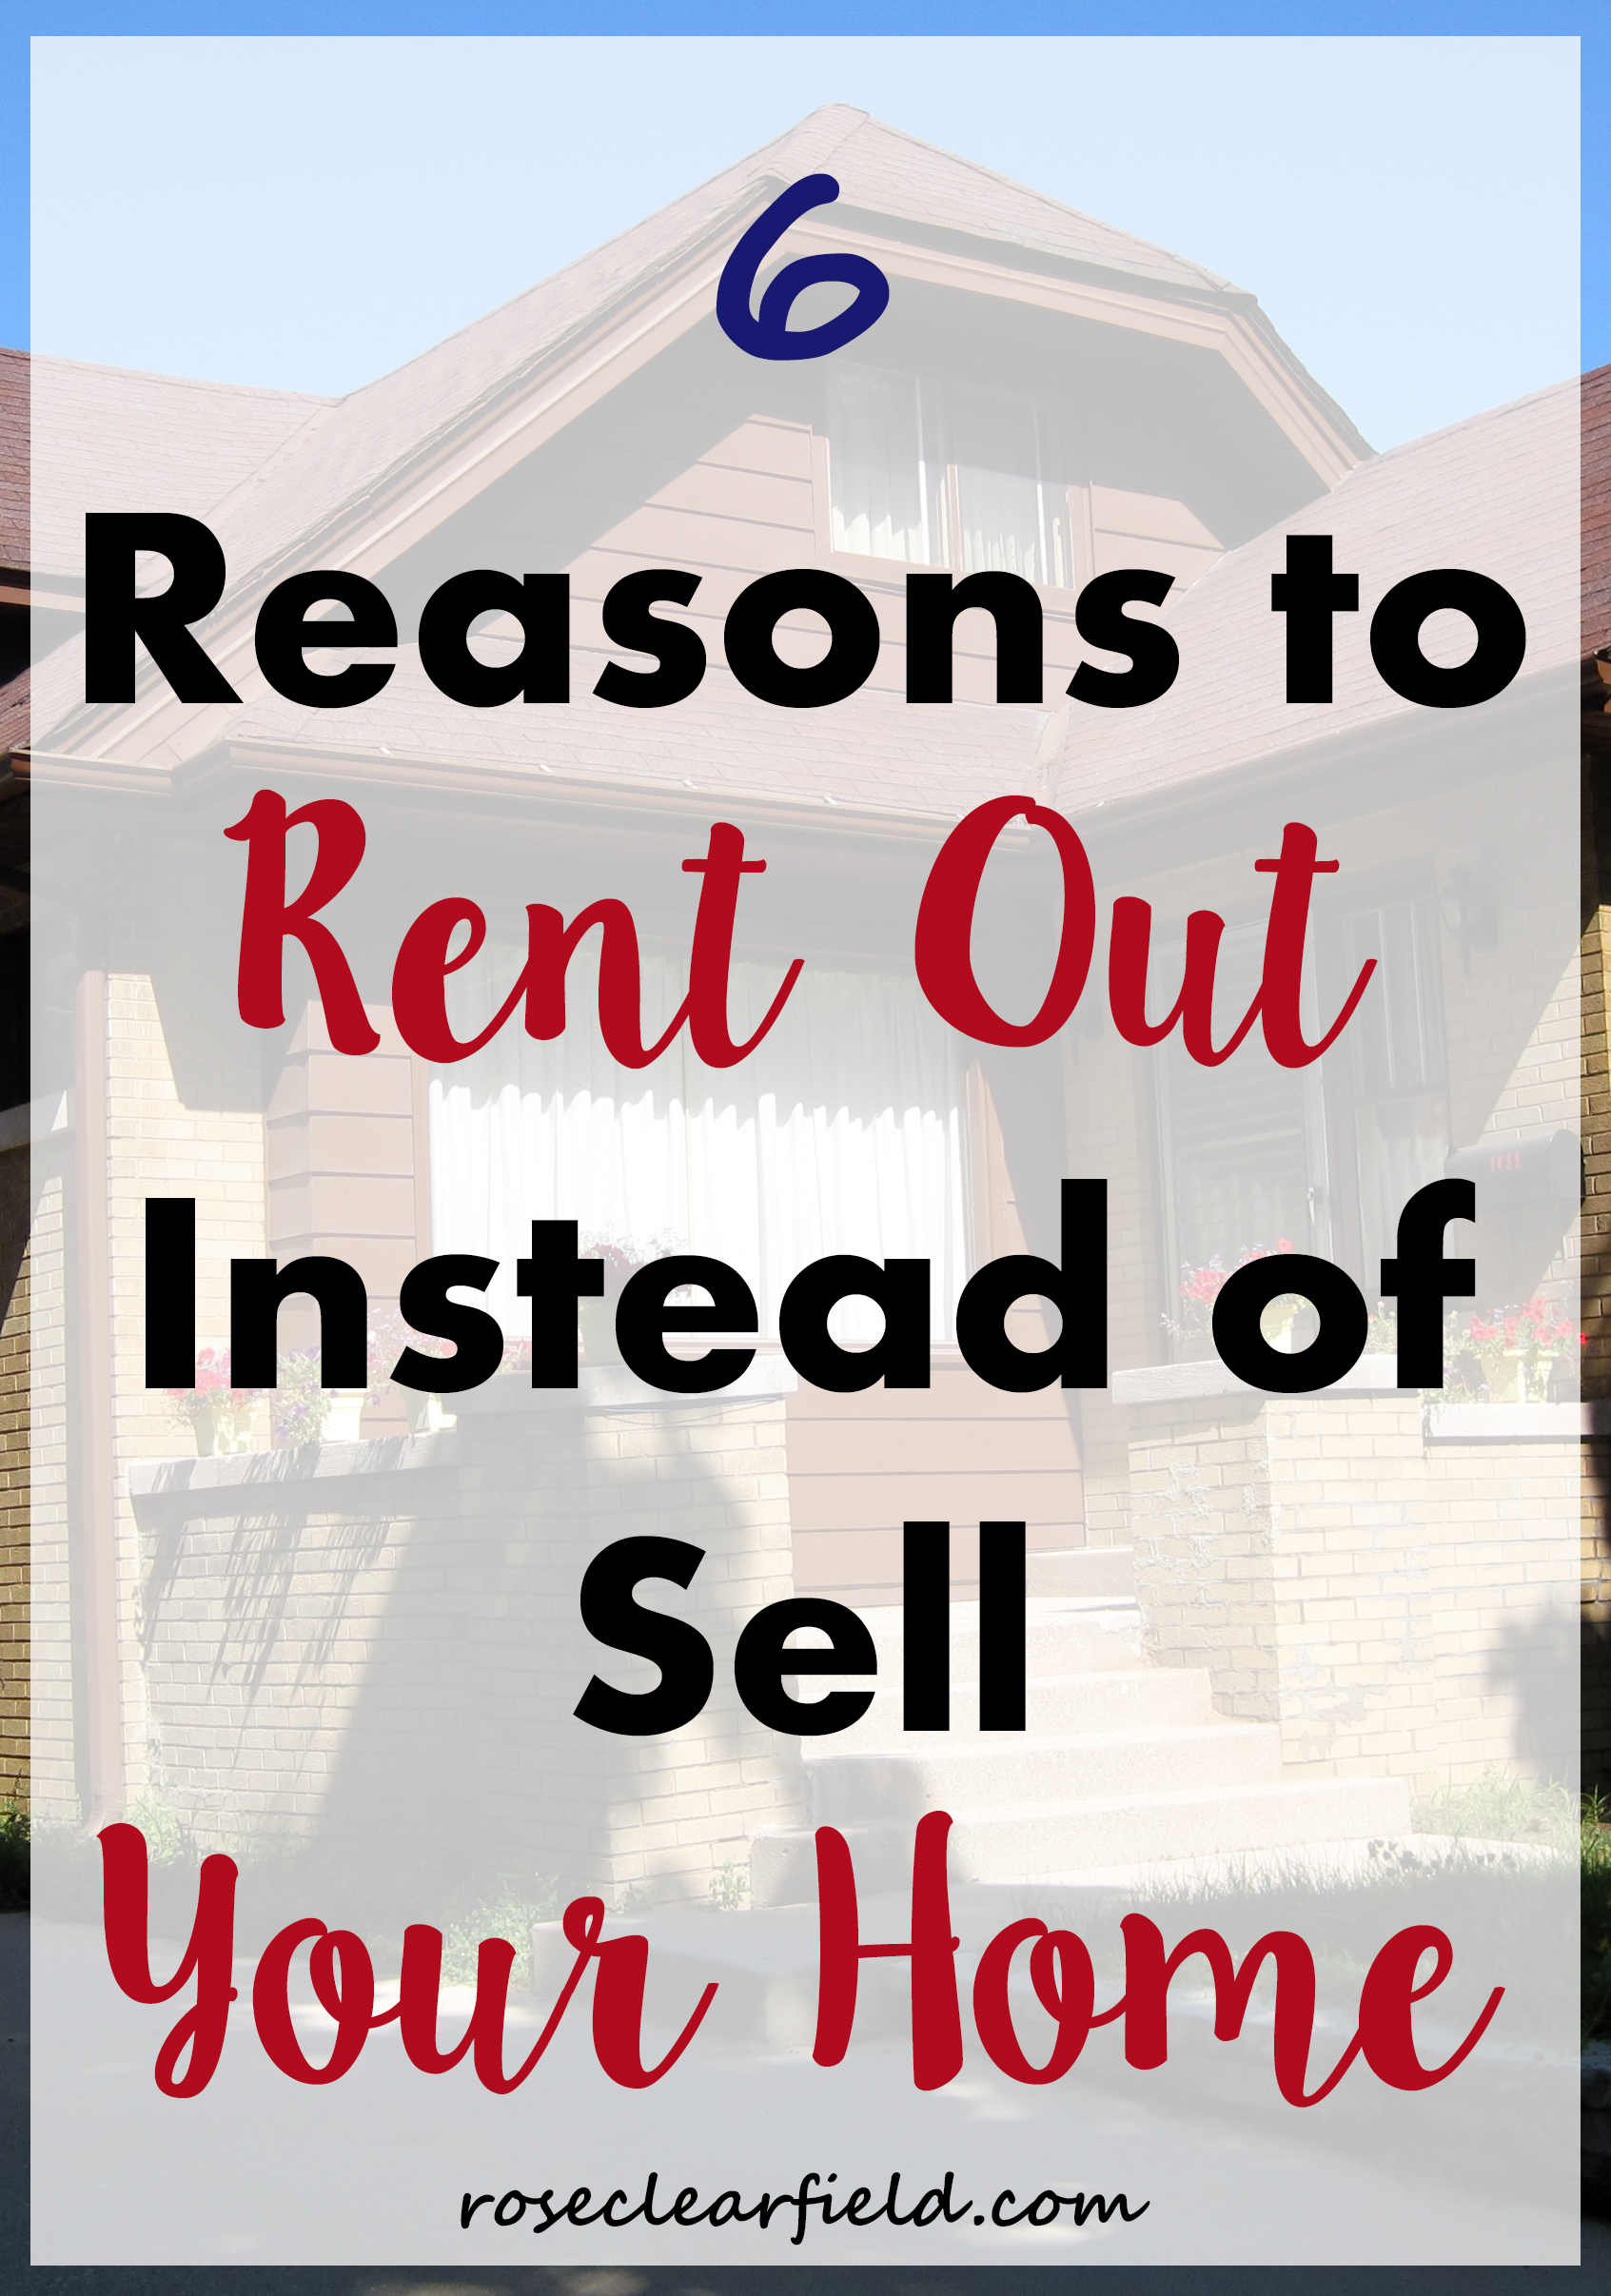 6 Reasons to Rent Out Instead of Sell Your Home | https://www.roseclearfield.com